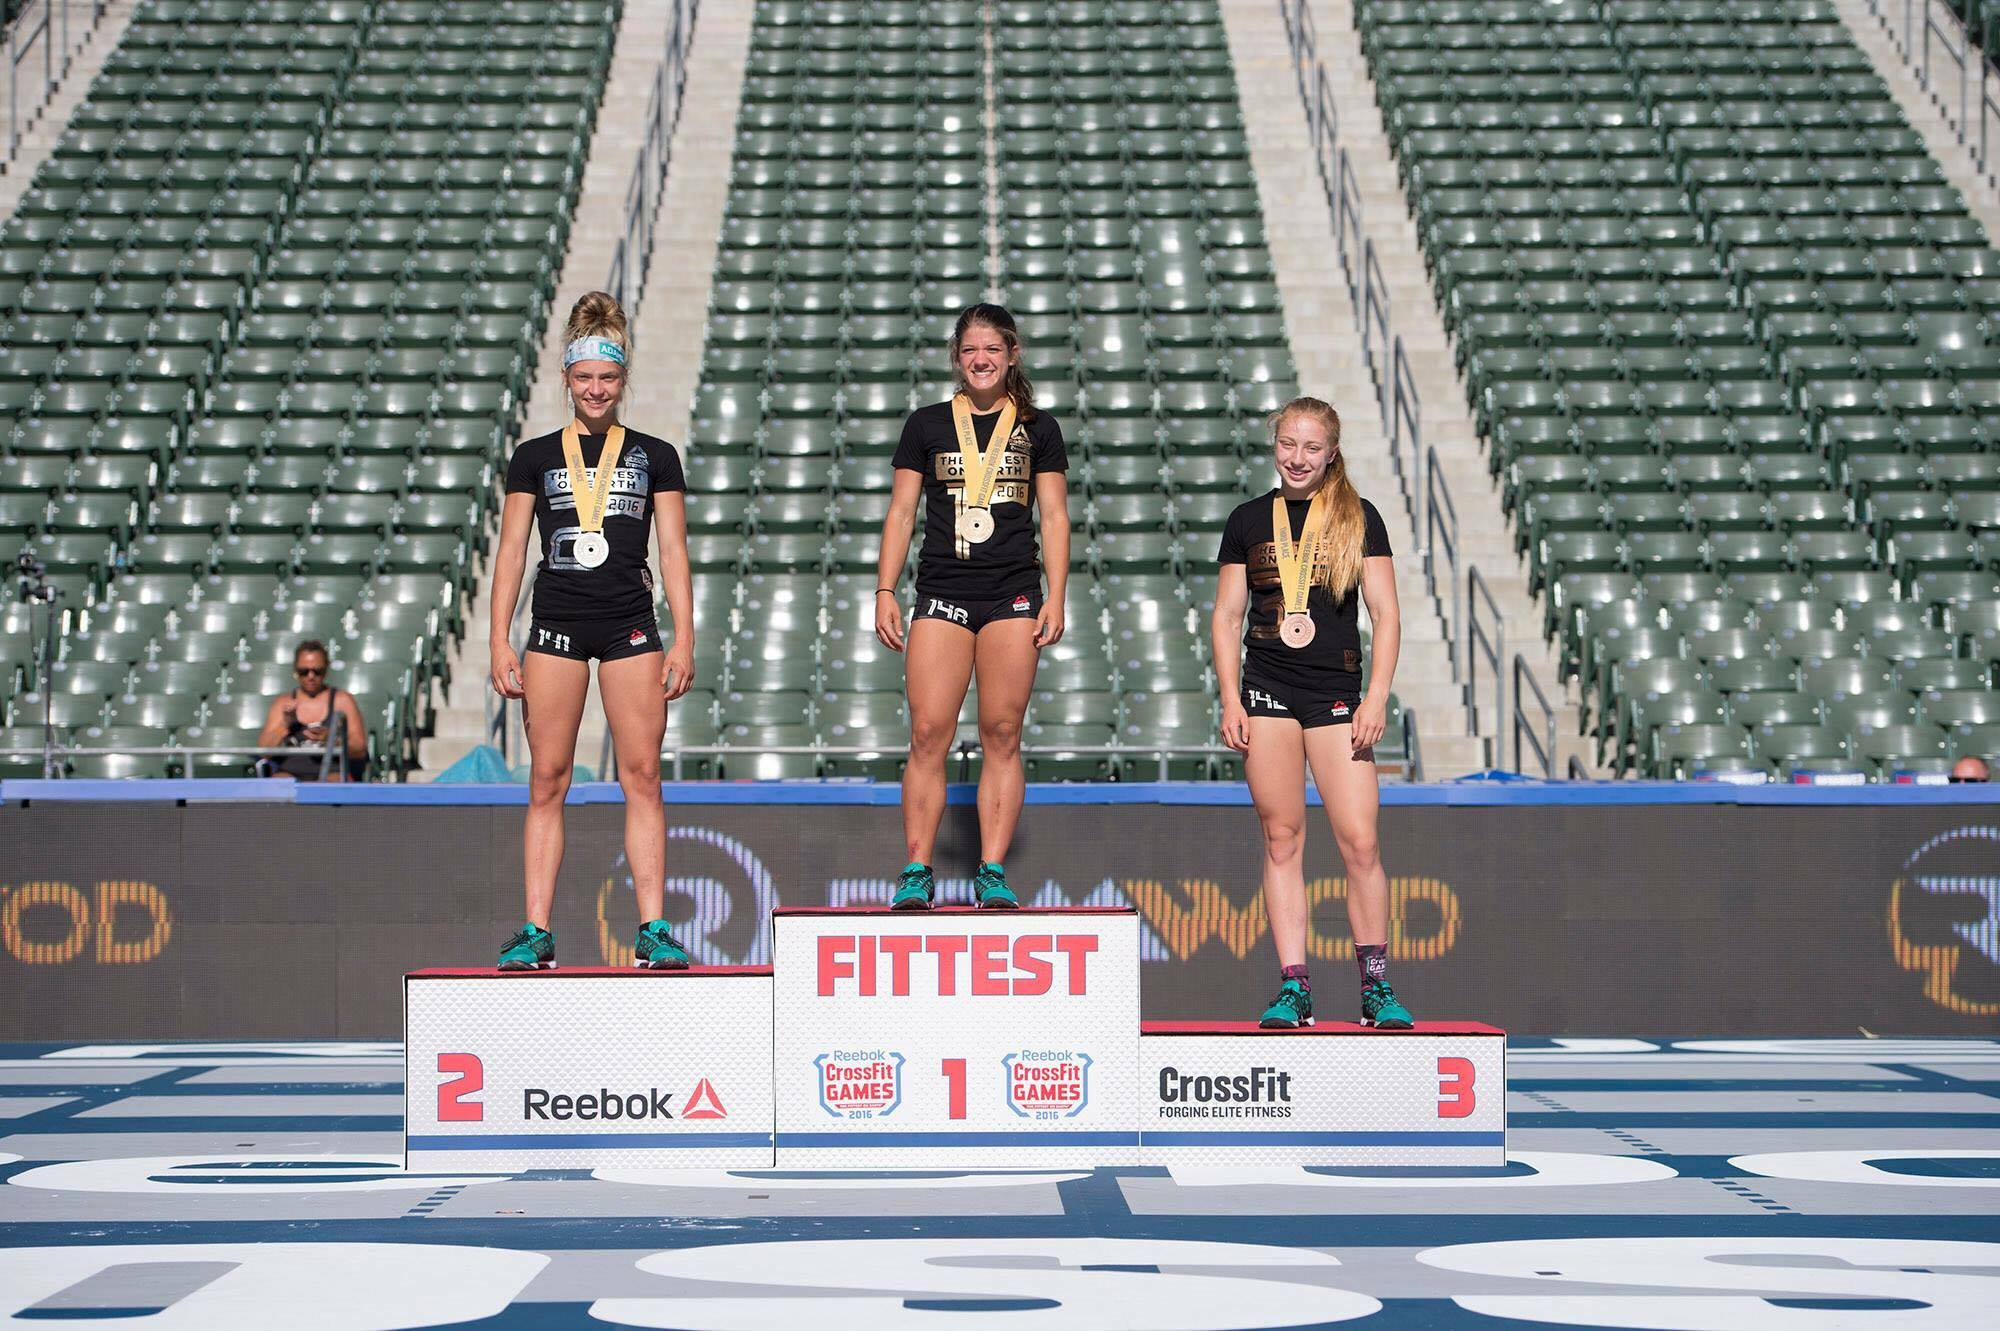 crossfit hype games champion Kaela Stephano east boca raton compete fitness elite athletes competition south florida olympic lifting